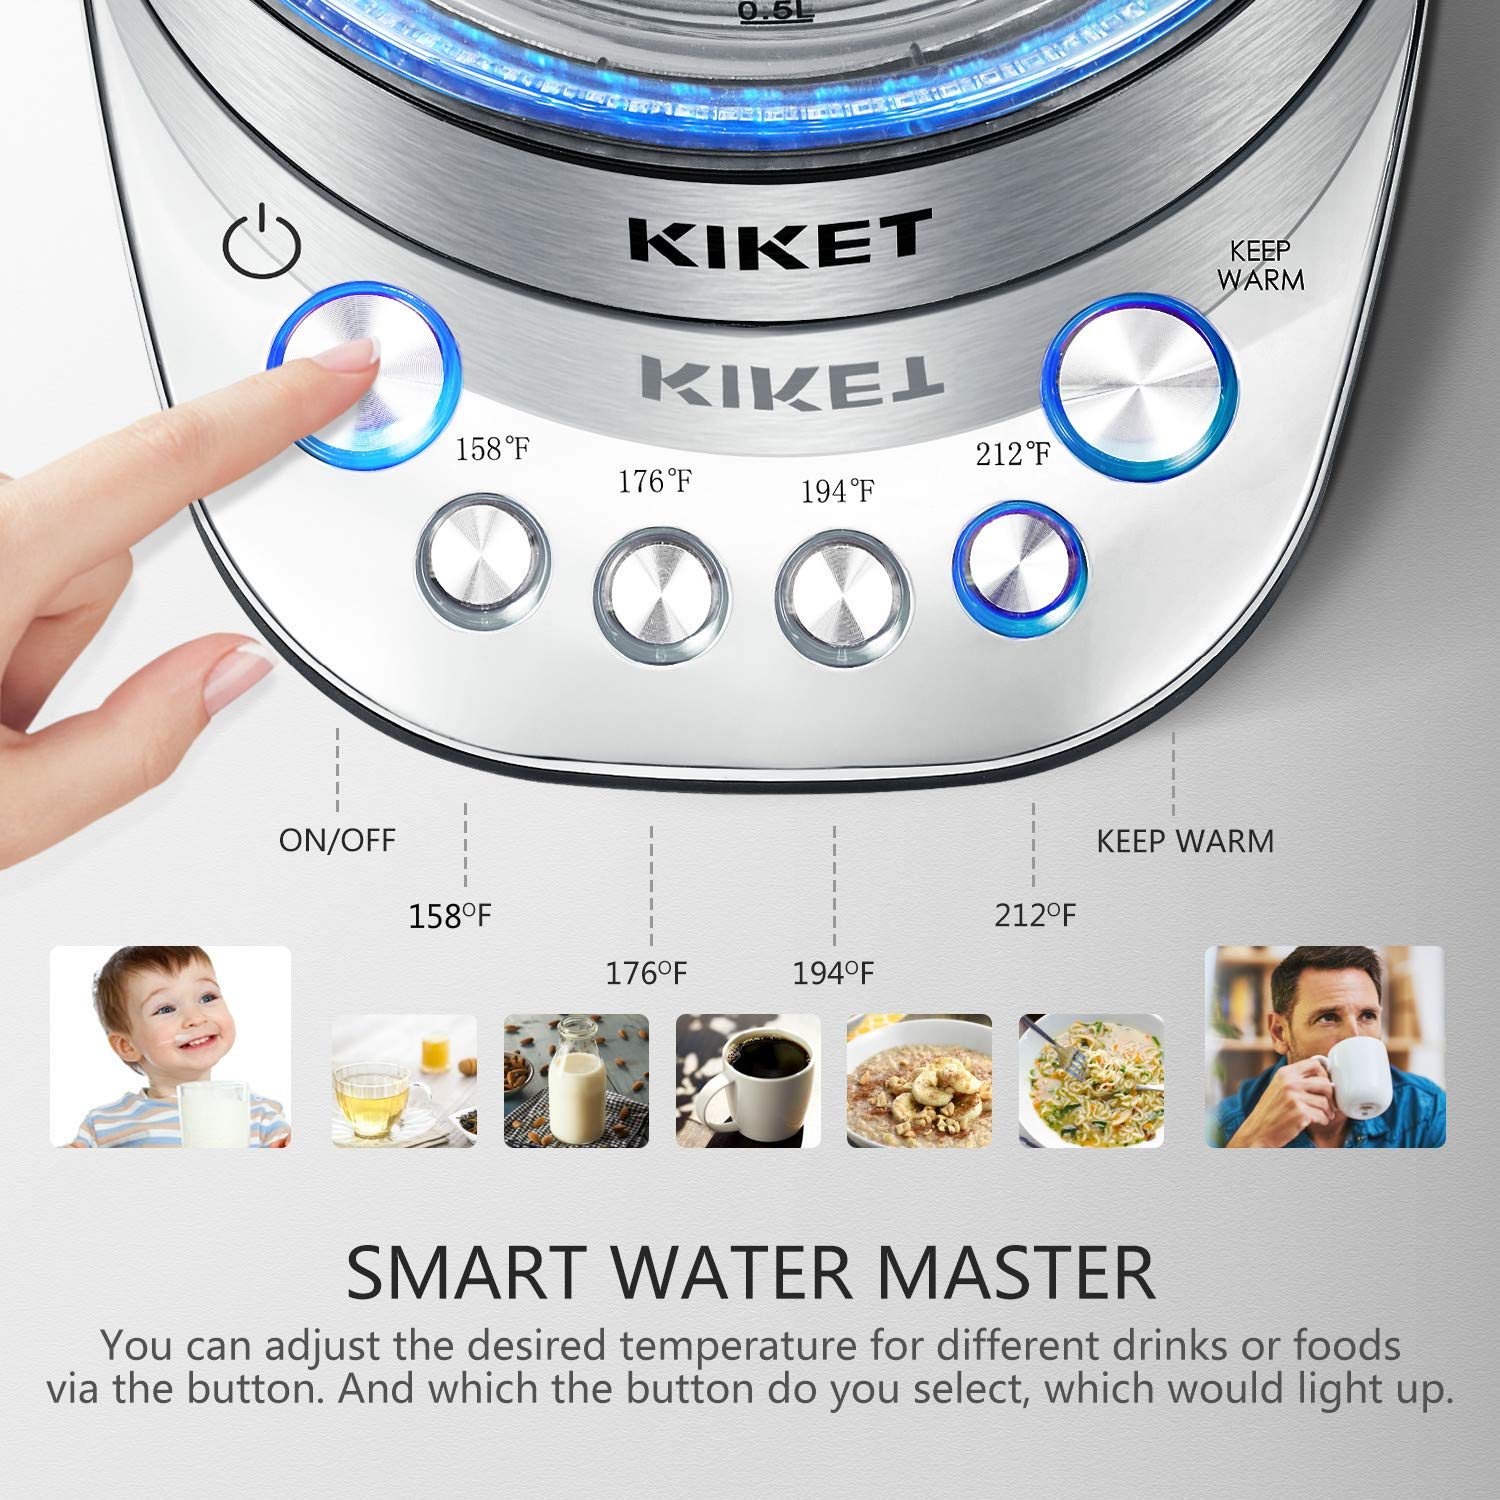 Electric Kettle Temperature Control, 100% BPA Free Pure Glass Water Boiler, 1.7L Cordless Tea Kettle with LED Indicator Light, High End Design for Tea and Coffee Brewing, Boil Dry Protection, by KIKET by KIKET (Image #2)